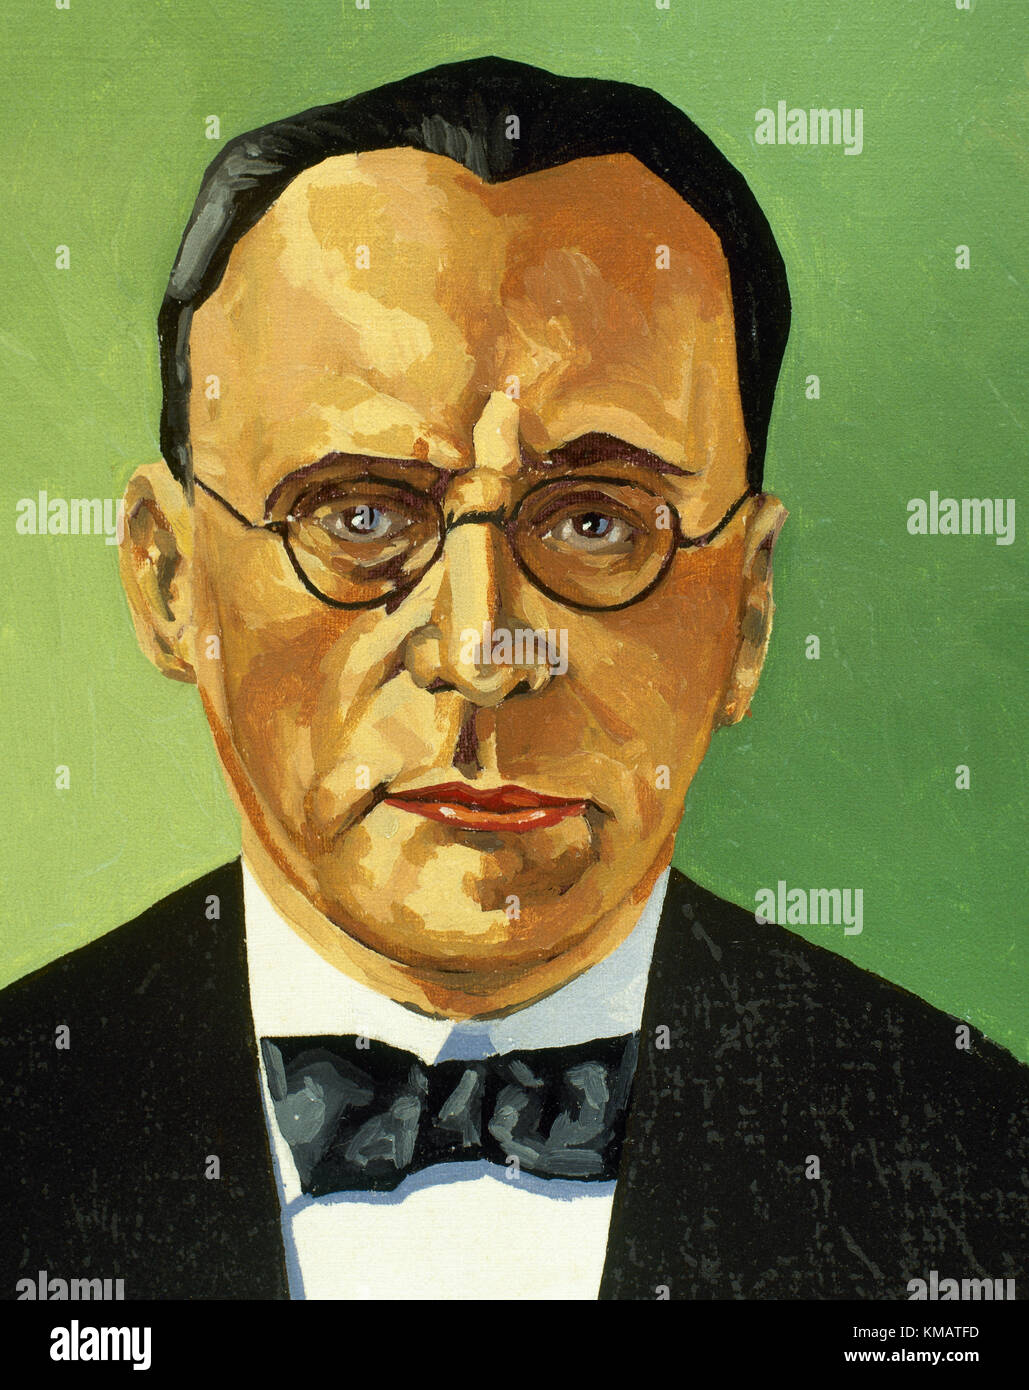 Anton von Webern (1883-1945). Austrian composer and conductor. Member of the Second Viennese School. Portrait. Watercolor. - Stock Image